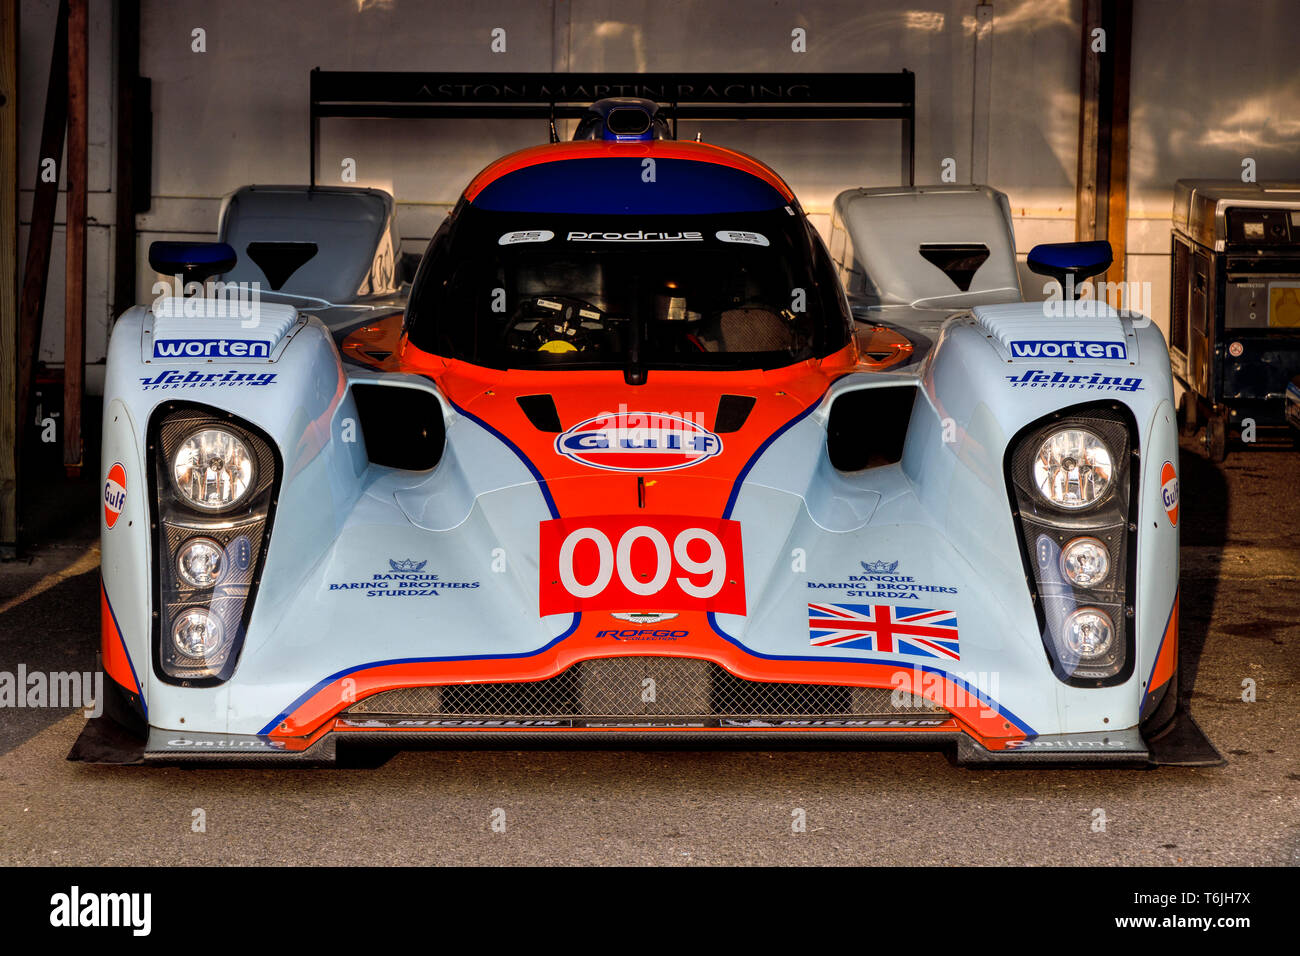 2009 Lola Aston Martin B09 60 Lmp1 Endurance Racer In The Paddock Garage At The 77th Goodwood Members Meeting Sussex Uk Stock Photo Alamy